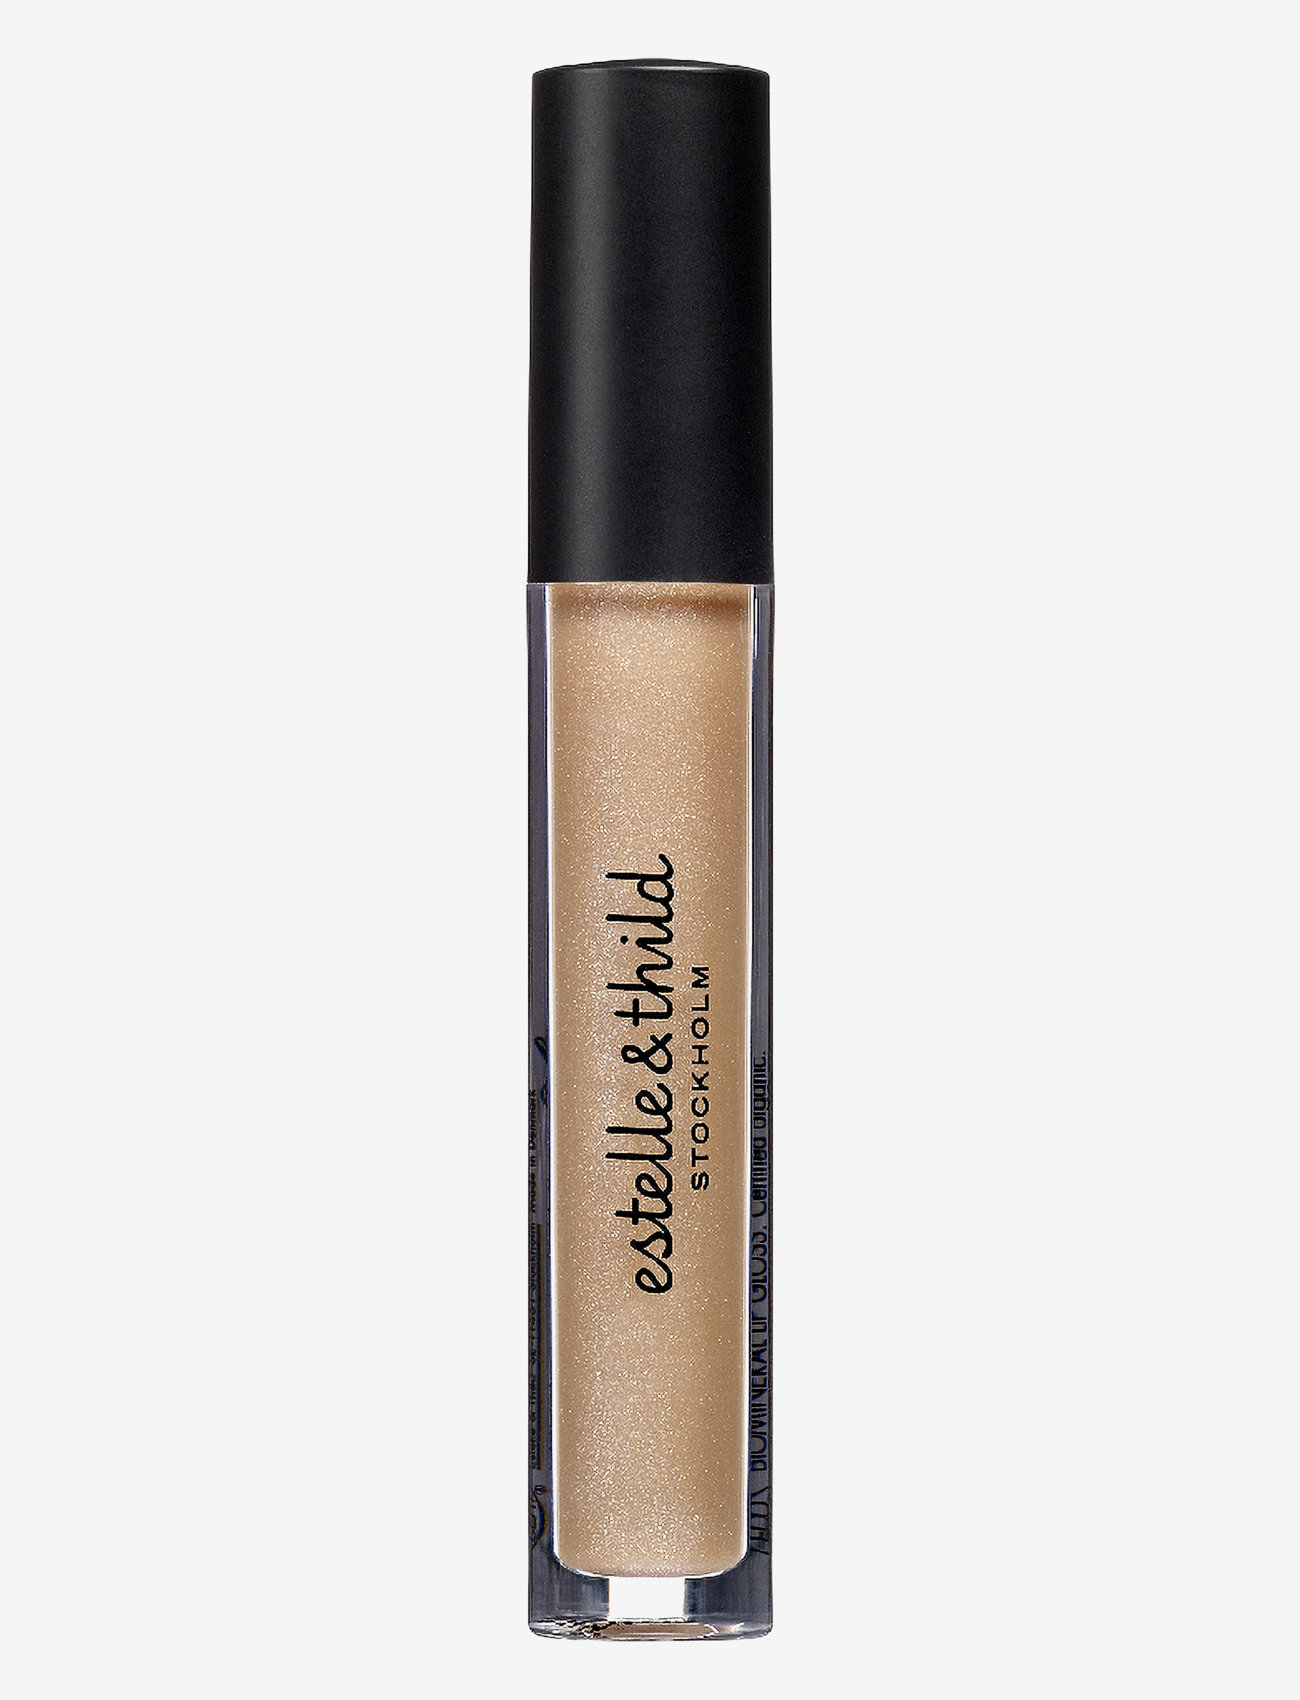 Estelle & Thild - BioMineral Lip Gloss Toffee - lipgloss - toffee - 0